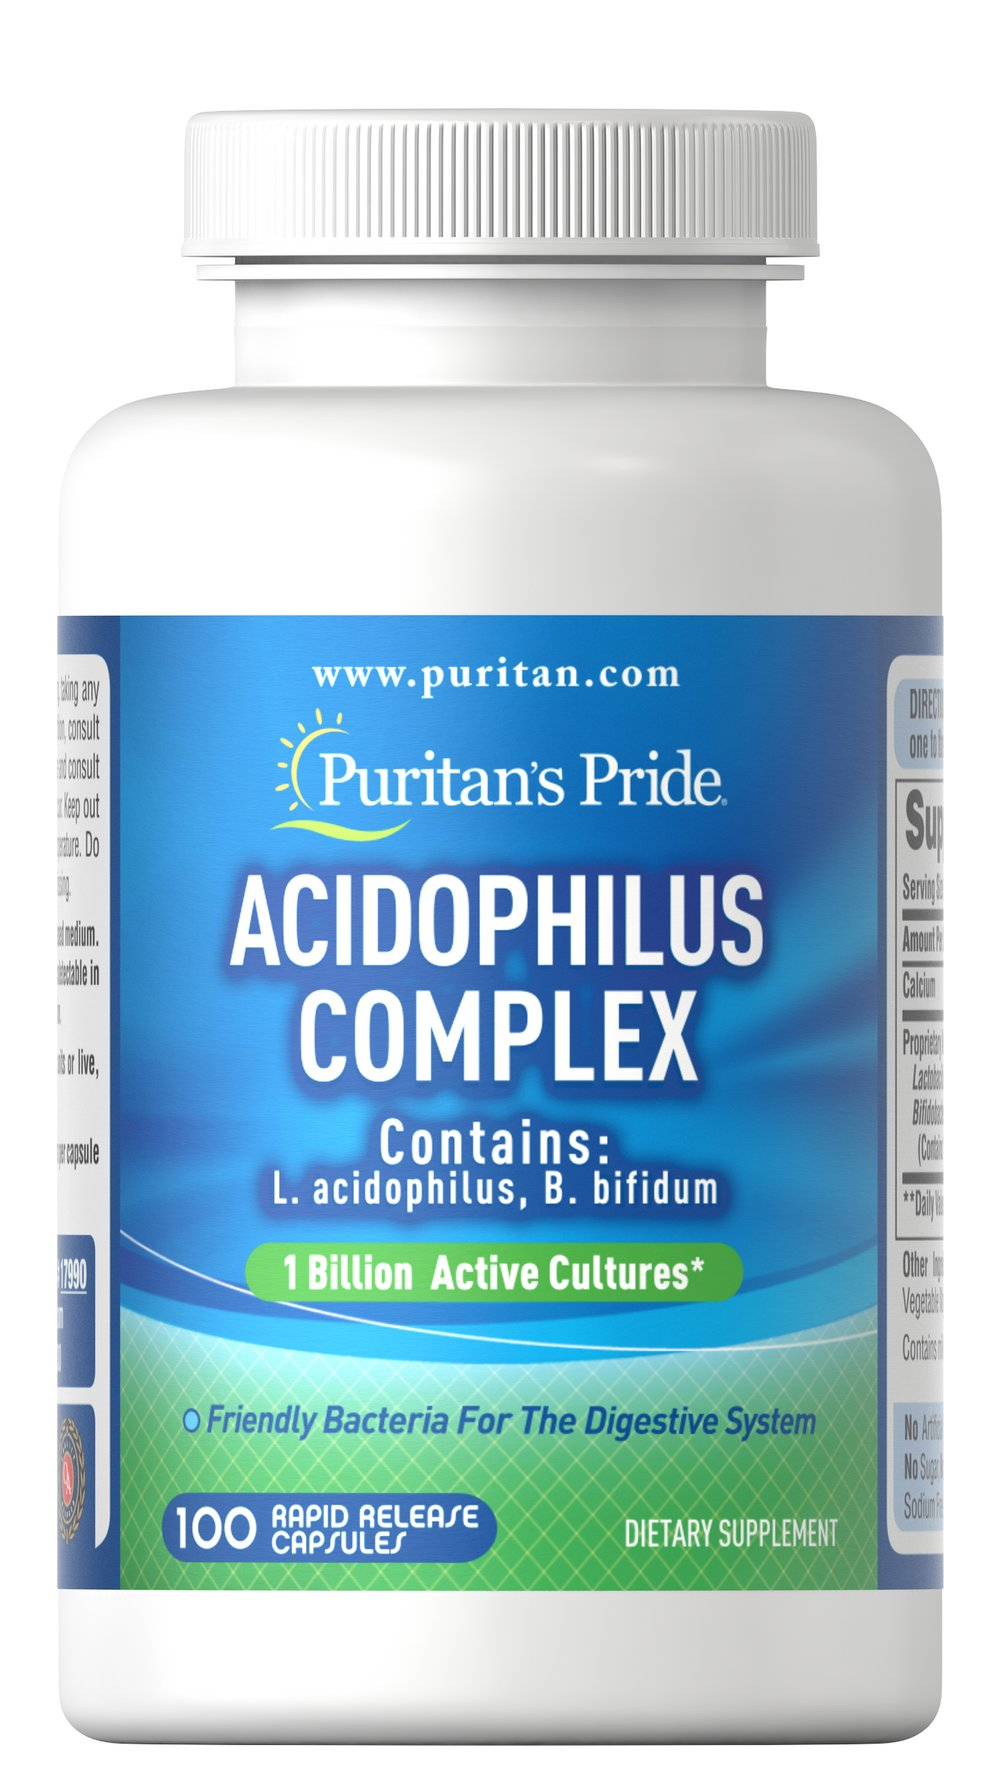 Probiotic Acidophilus Complex <p>Supports Digestive and Intestinal Health**</p>  <p>1 Billion multi strain active cultures per capsule at time of manufacture</p>  <p>Contains L. Acidophilus and B. lactis</p>  <p>Acidophilus supports the healthy functioning of the intestinal system by promoting a favorable environment for the absorption of nutrients.** Most digestion takes place in the intestines so it is important to maintain intestinal health.</p>